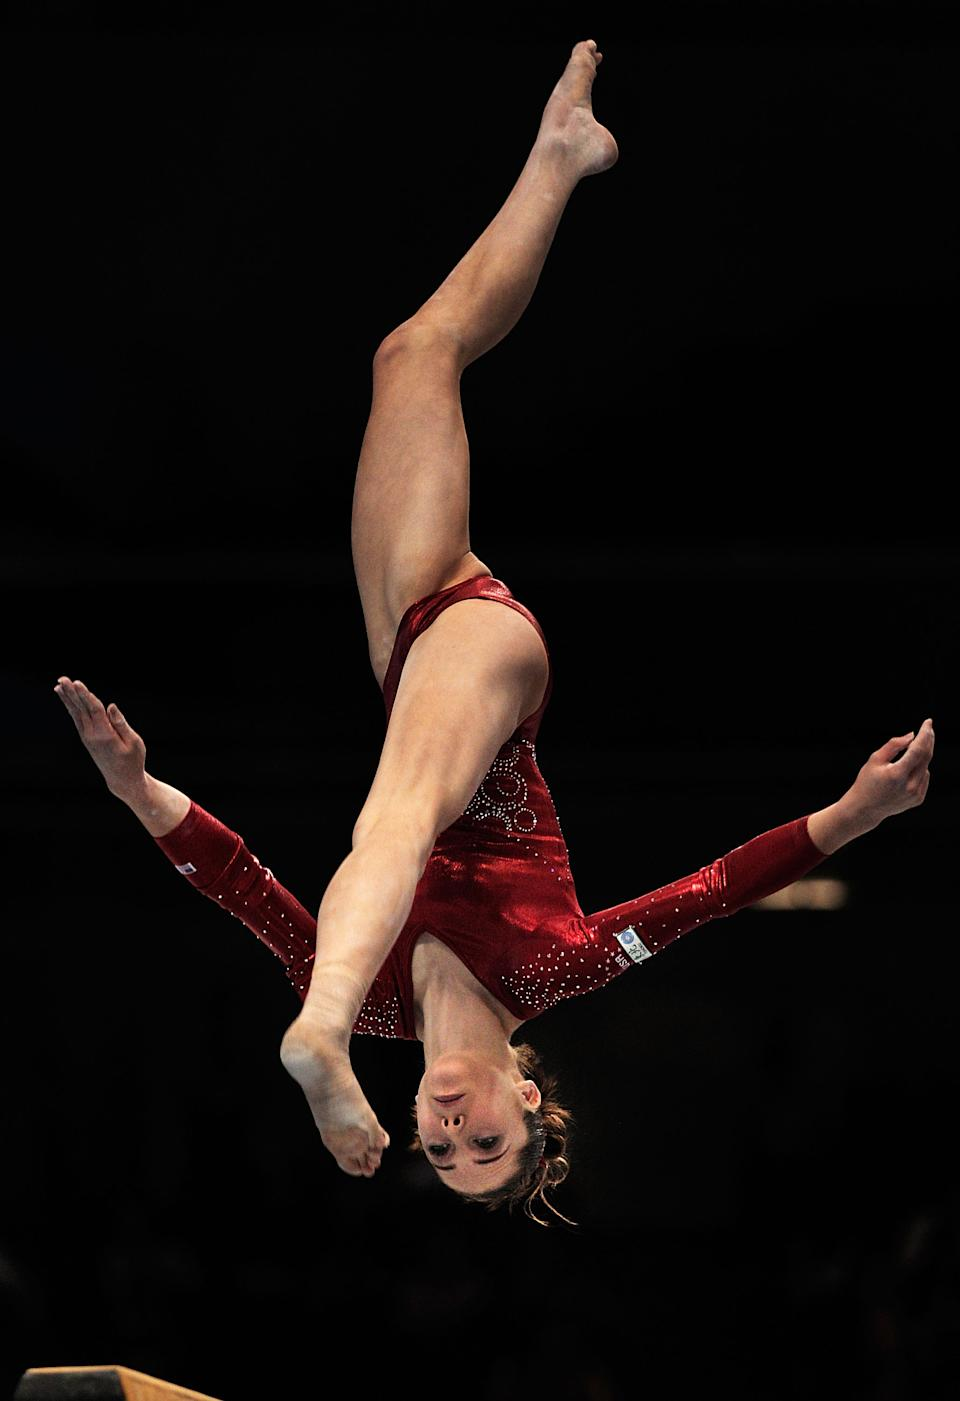 McKayla Maroney of the USA competes on the Beam apparatus in the women's qualification during day two of the Artistic Gymnastics World Championships Tokyo 2011. (Adam Pretty/Getty Images)